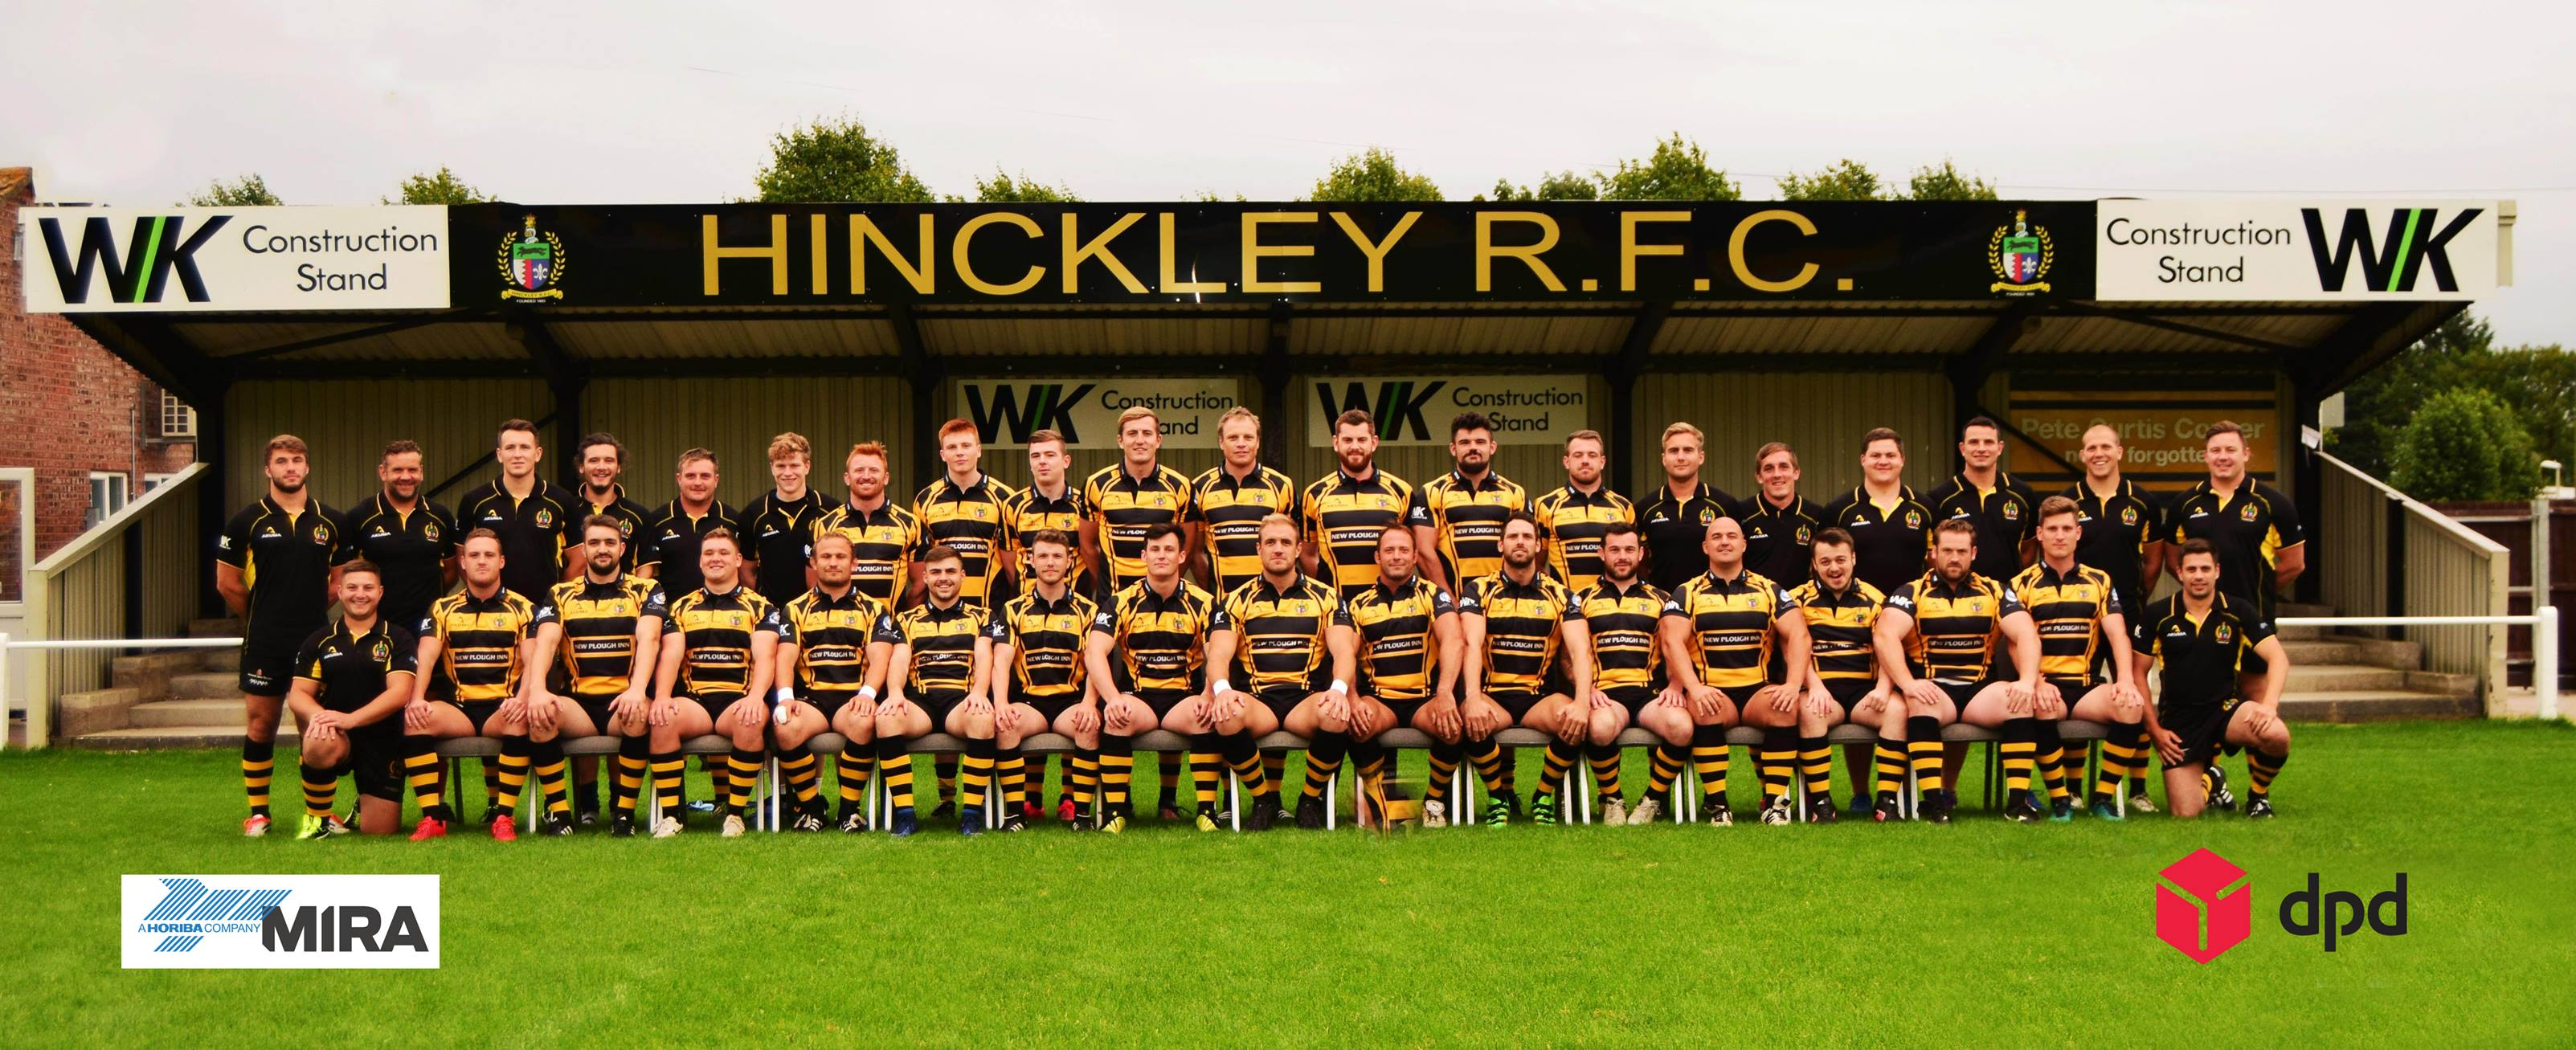 The History Of Hinckley Rugby Club